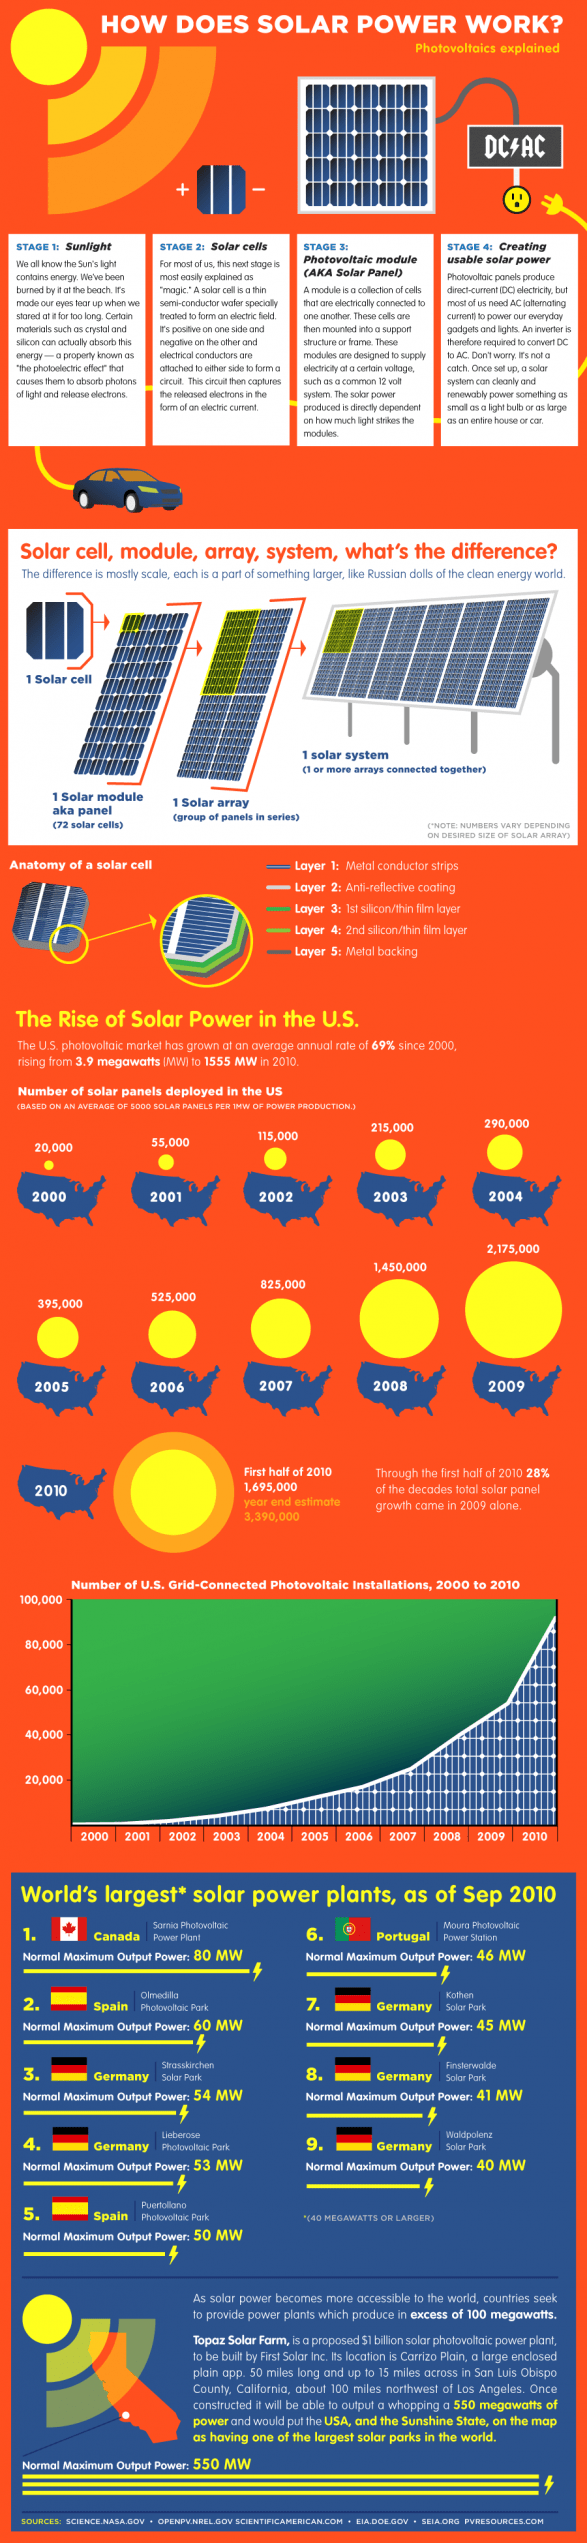 How Does Solar Power Work? - Photovoltaics Explained